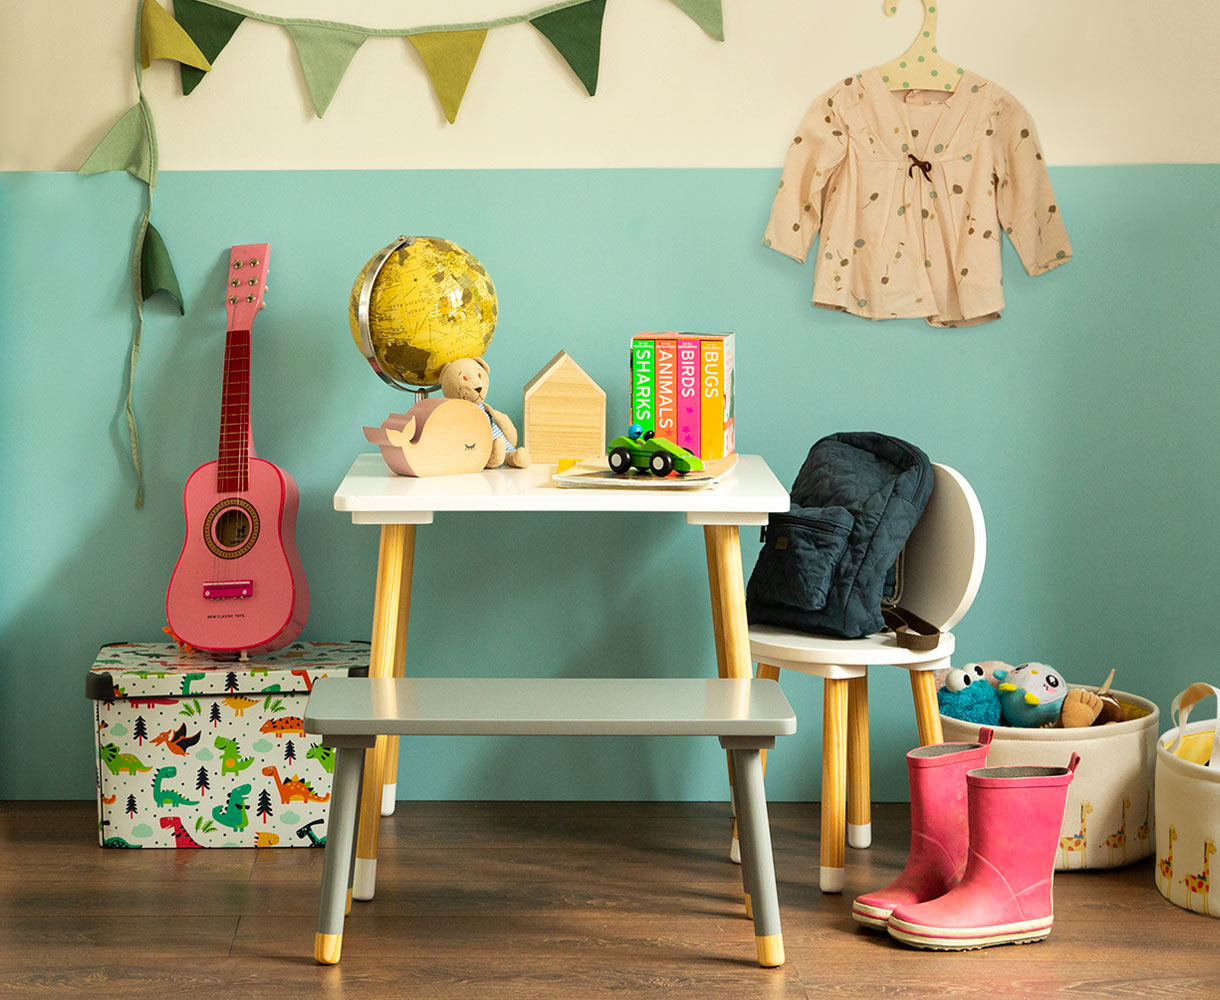 Principle Brand Design Dublin, Mini Home by Woodie's, Children's Homeware Range Branding, Lifestyle Interior Photography